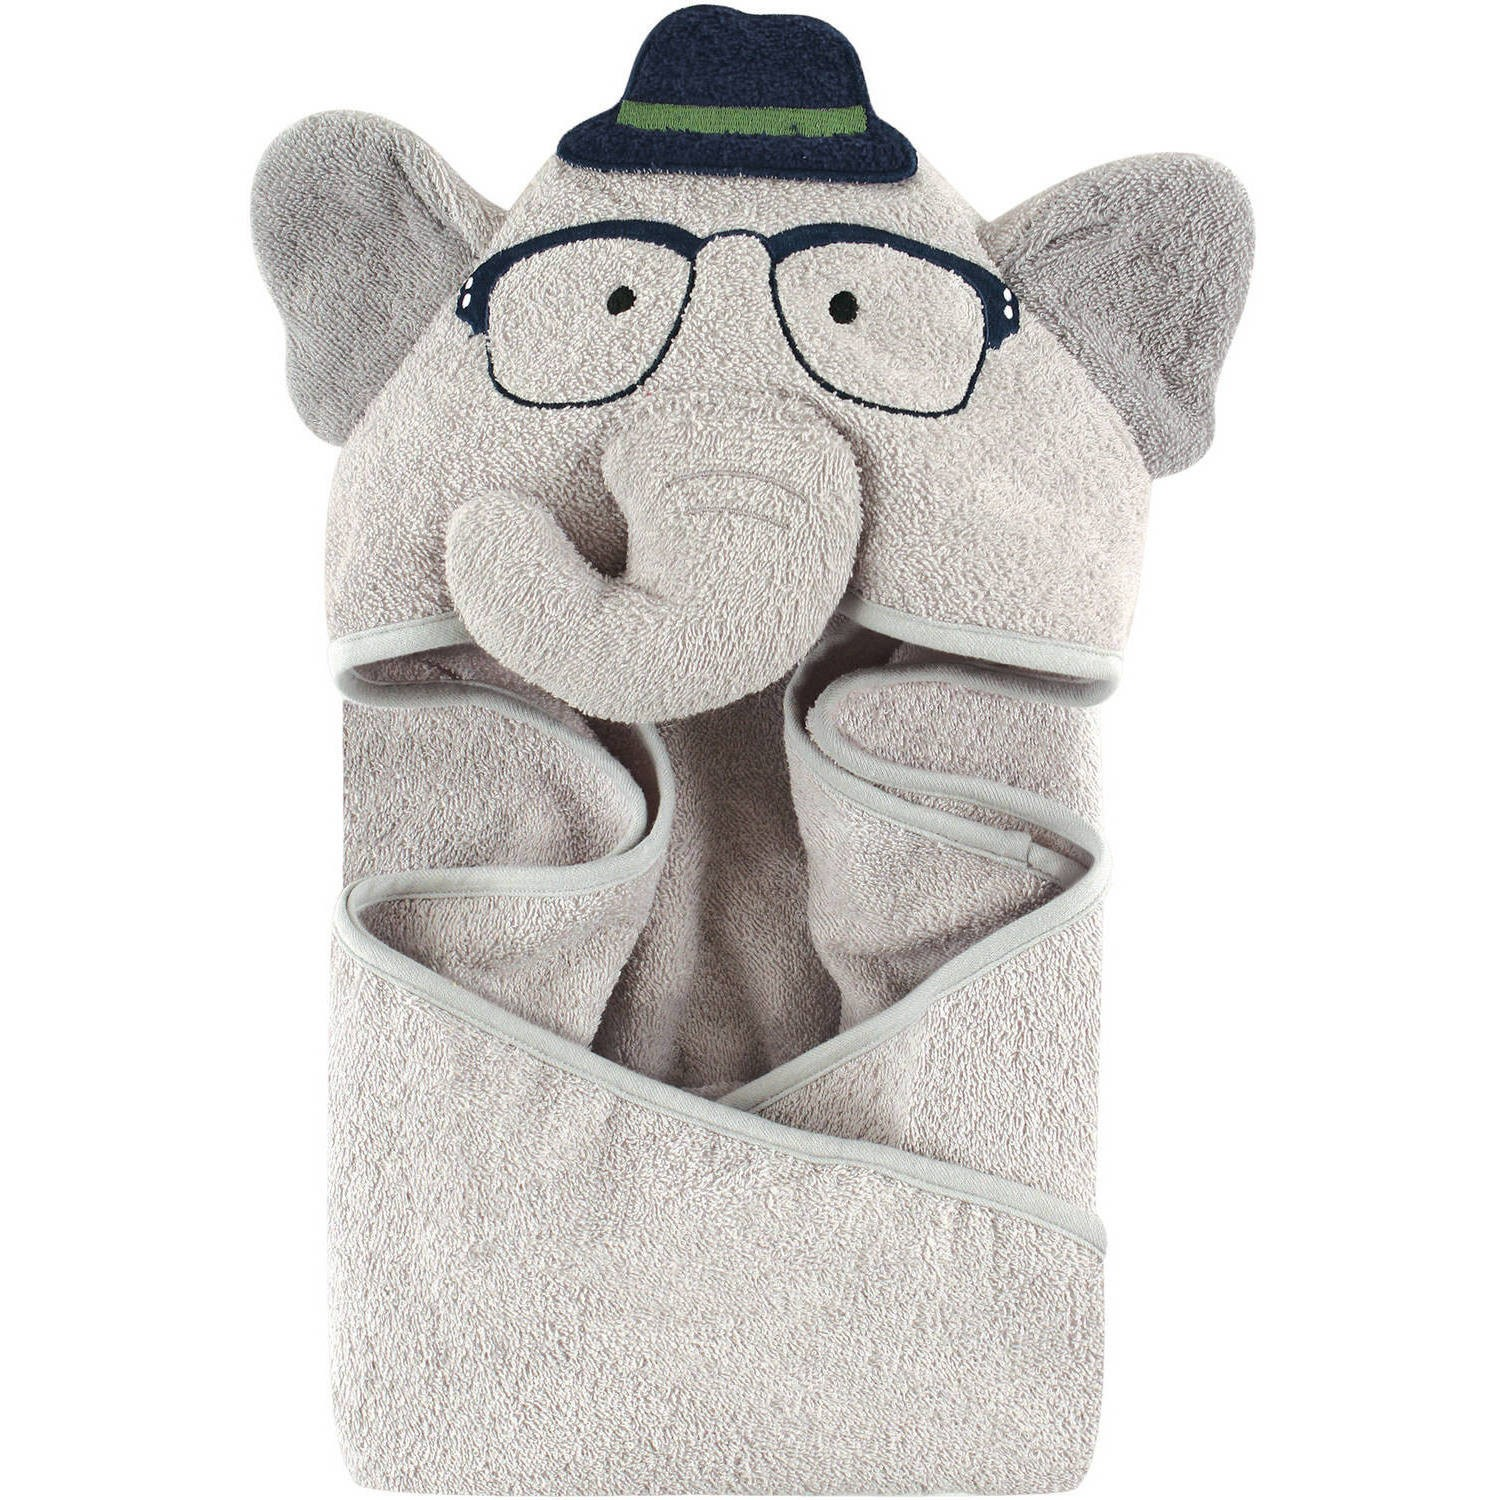 Hudson Baby Woven Terry Animal Hooded Towel, Blue Elephant